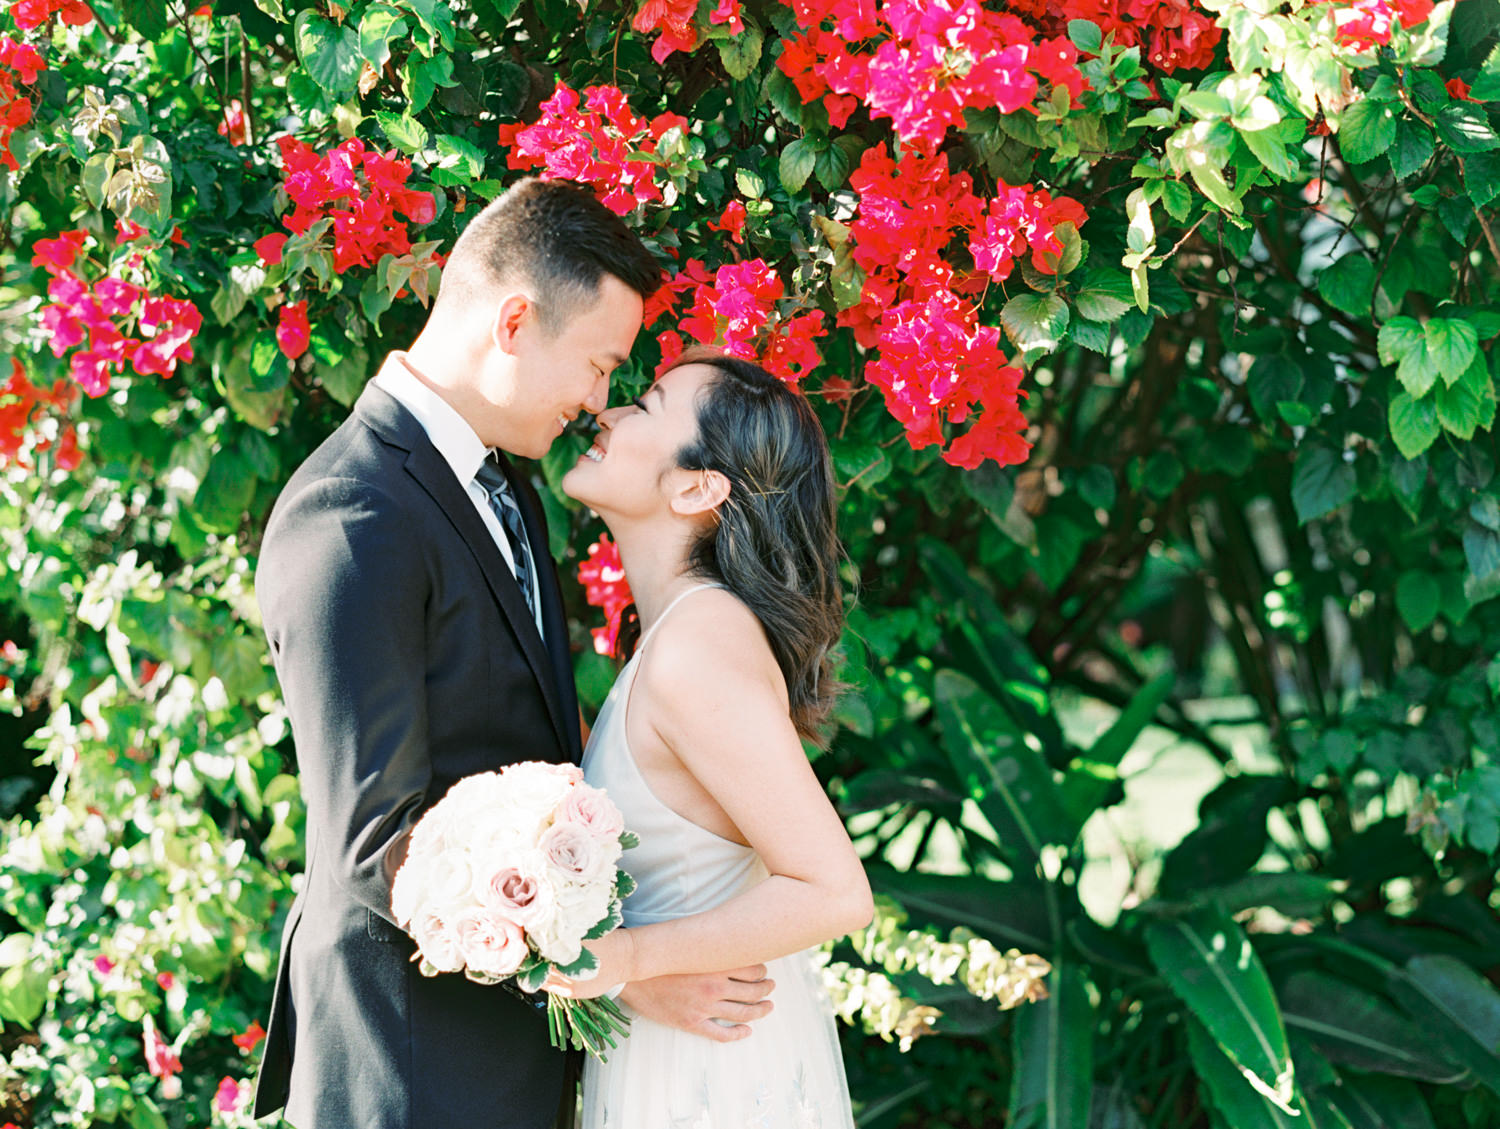 Bride with ivory and blush rose bouquet and floral print dress and groom in suit and tie in front of a pink bougainvillea bush. Coronado Centennial Park Engagement Photo by Cavin Elizabeth Photography - San Diego film photographer